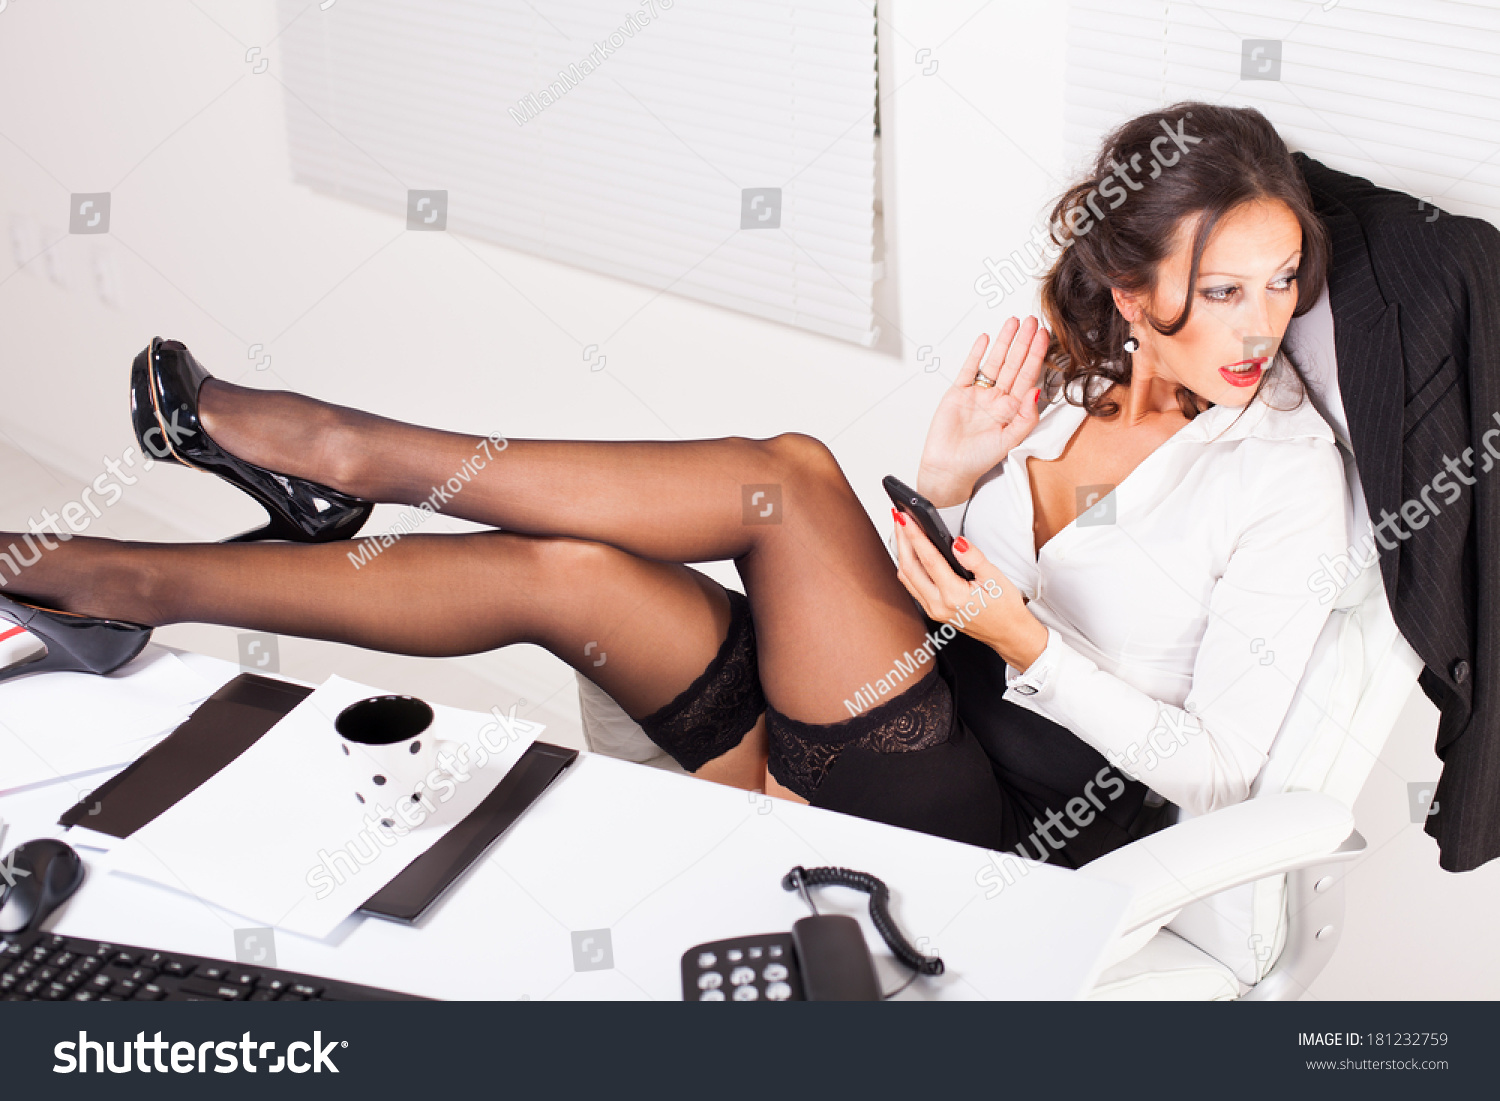 Hot Business Woman Sitting Office Legs Stock Photo 181232759